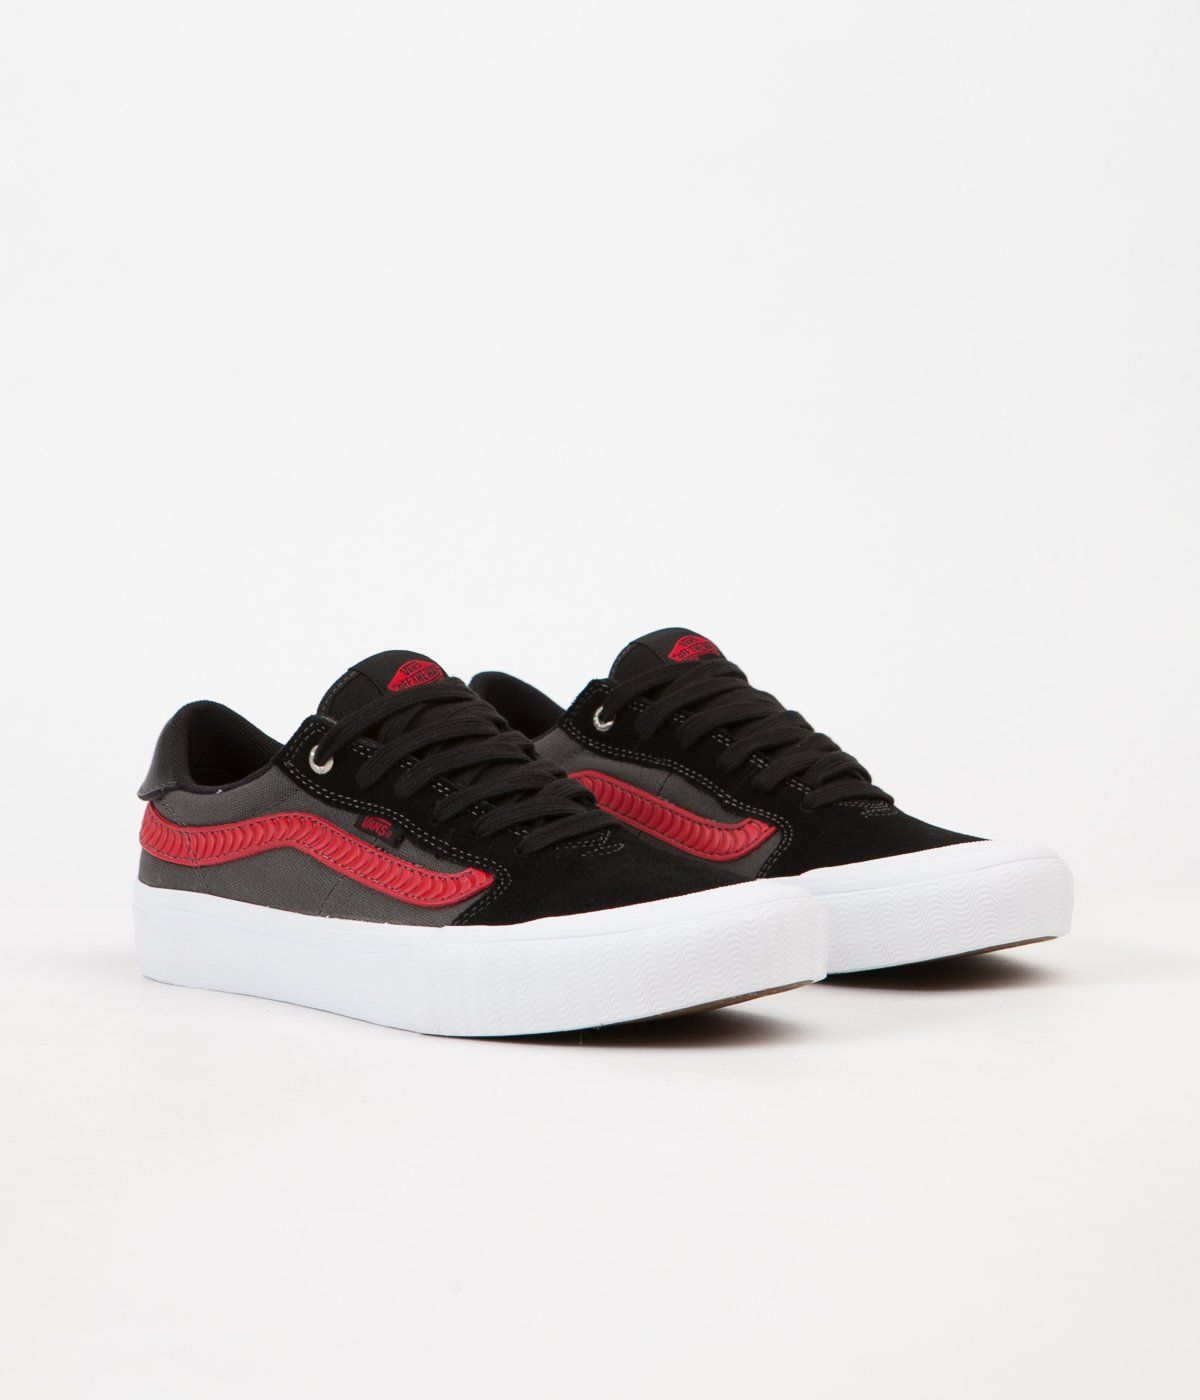 43cd2f4d7b4 Vans X Spitfire Style 112 Pro Shoes - Black